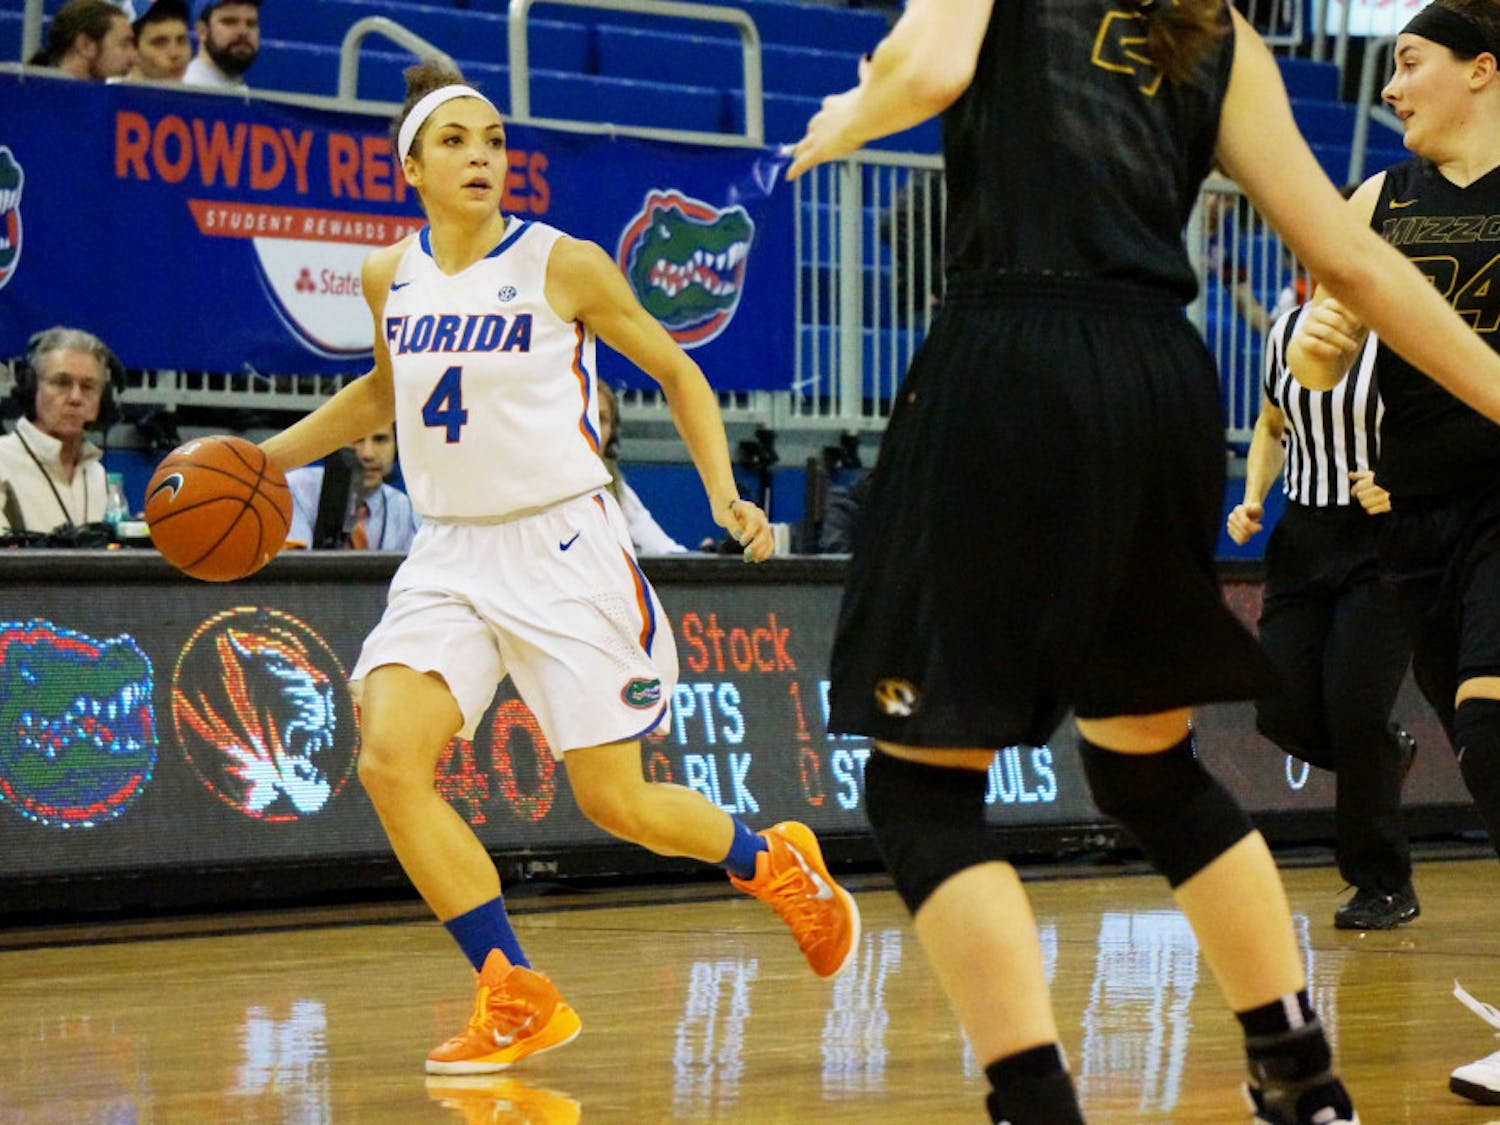 Carlie Needles dribbles the ball down the court during Florida's loss to Missouri on Thursday in the O'Connell Center.